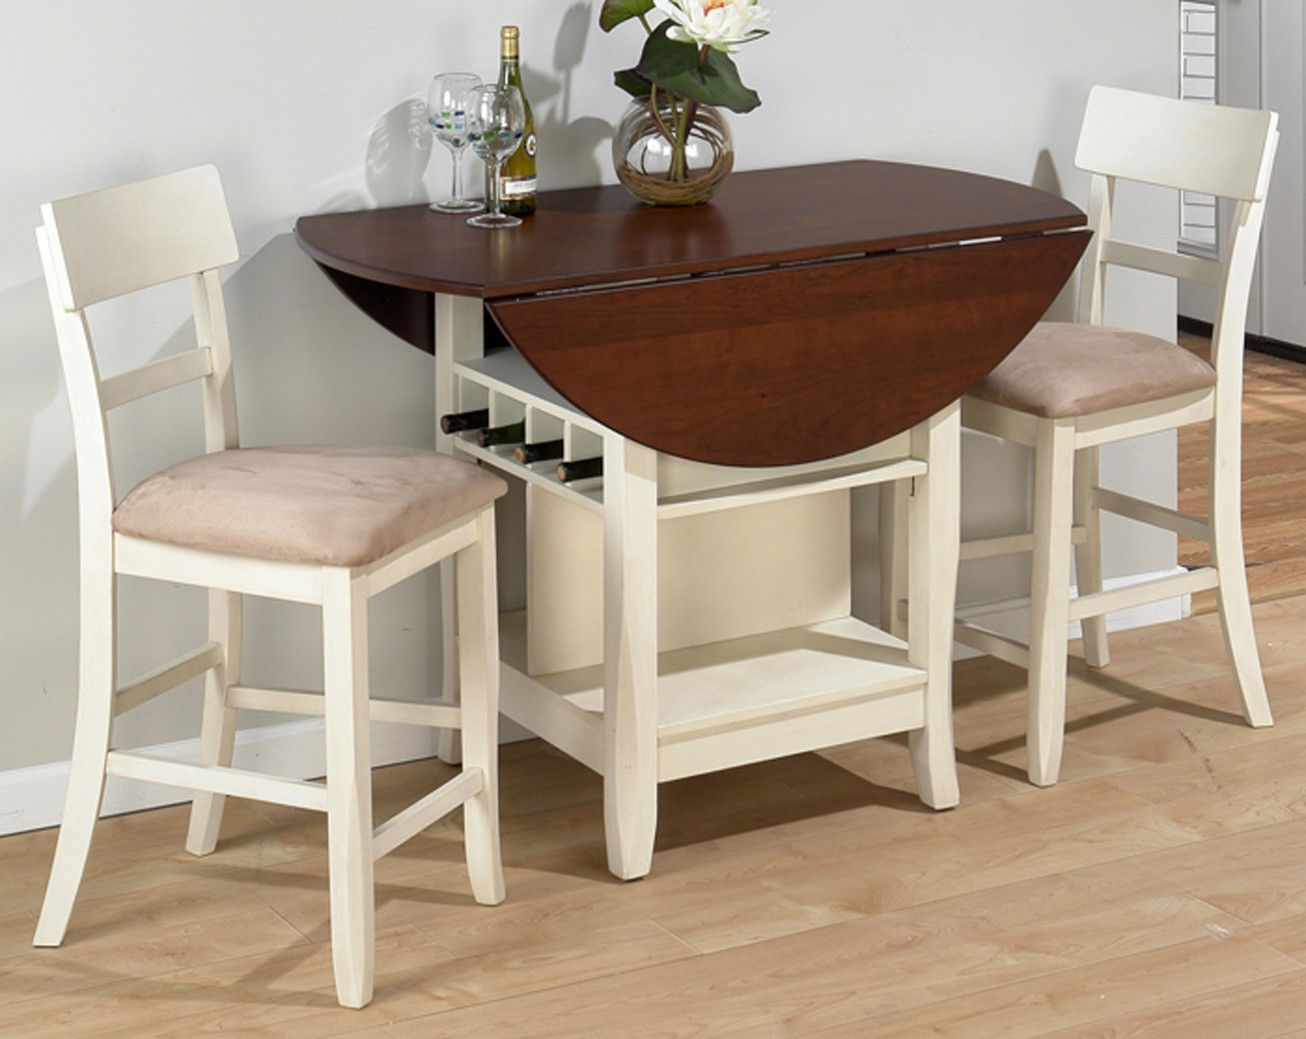 Small Kitchen Sets Furniture Small Table And Chairs Rimini Small Dining Table With 4 Dining